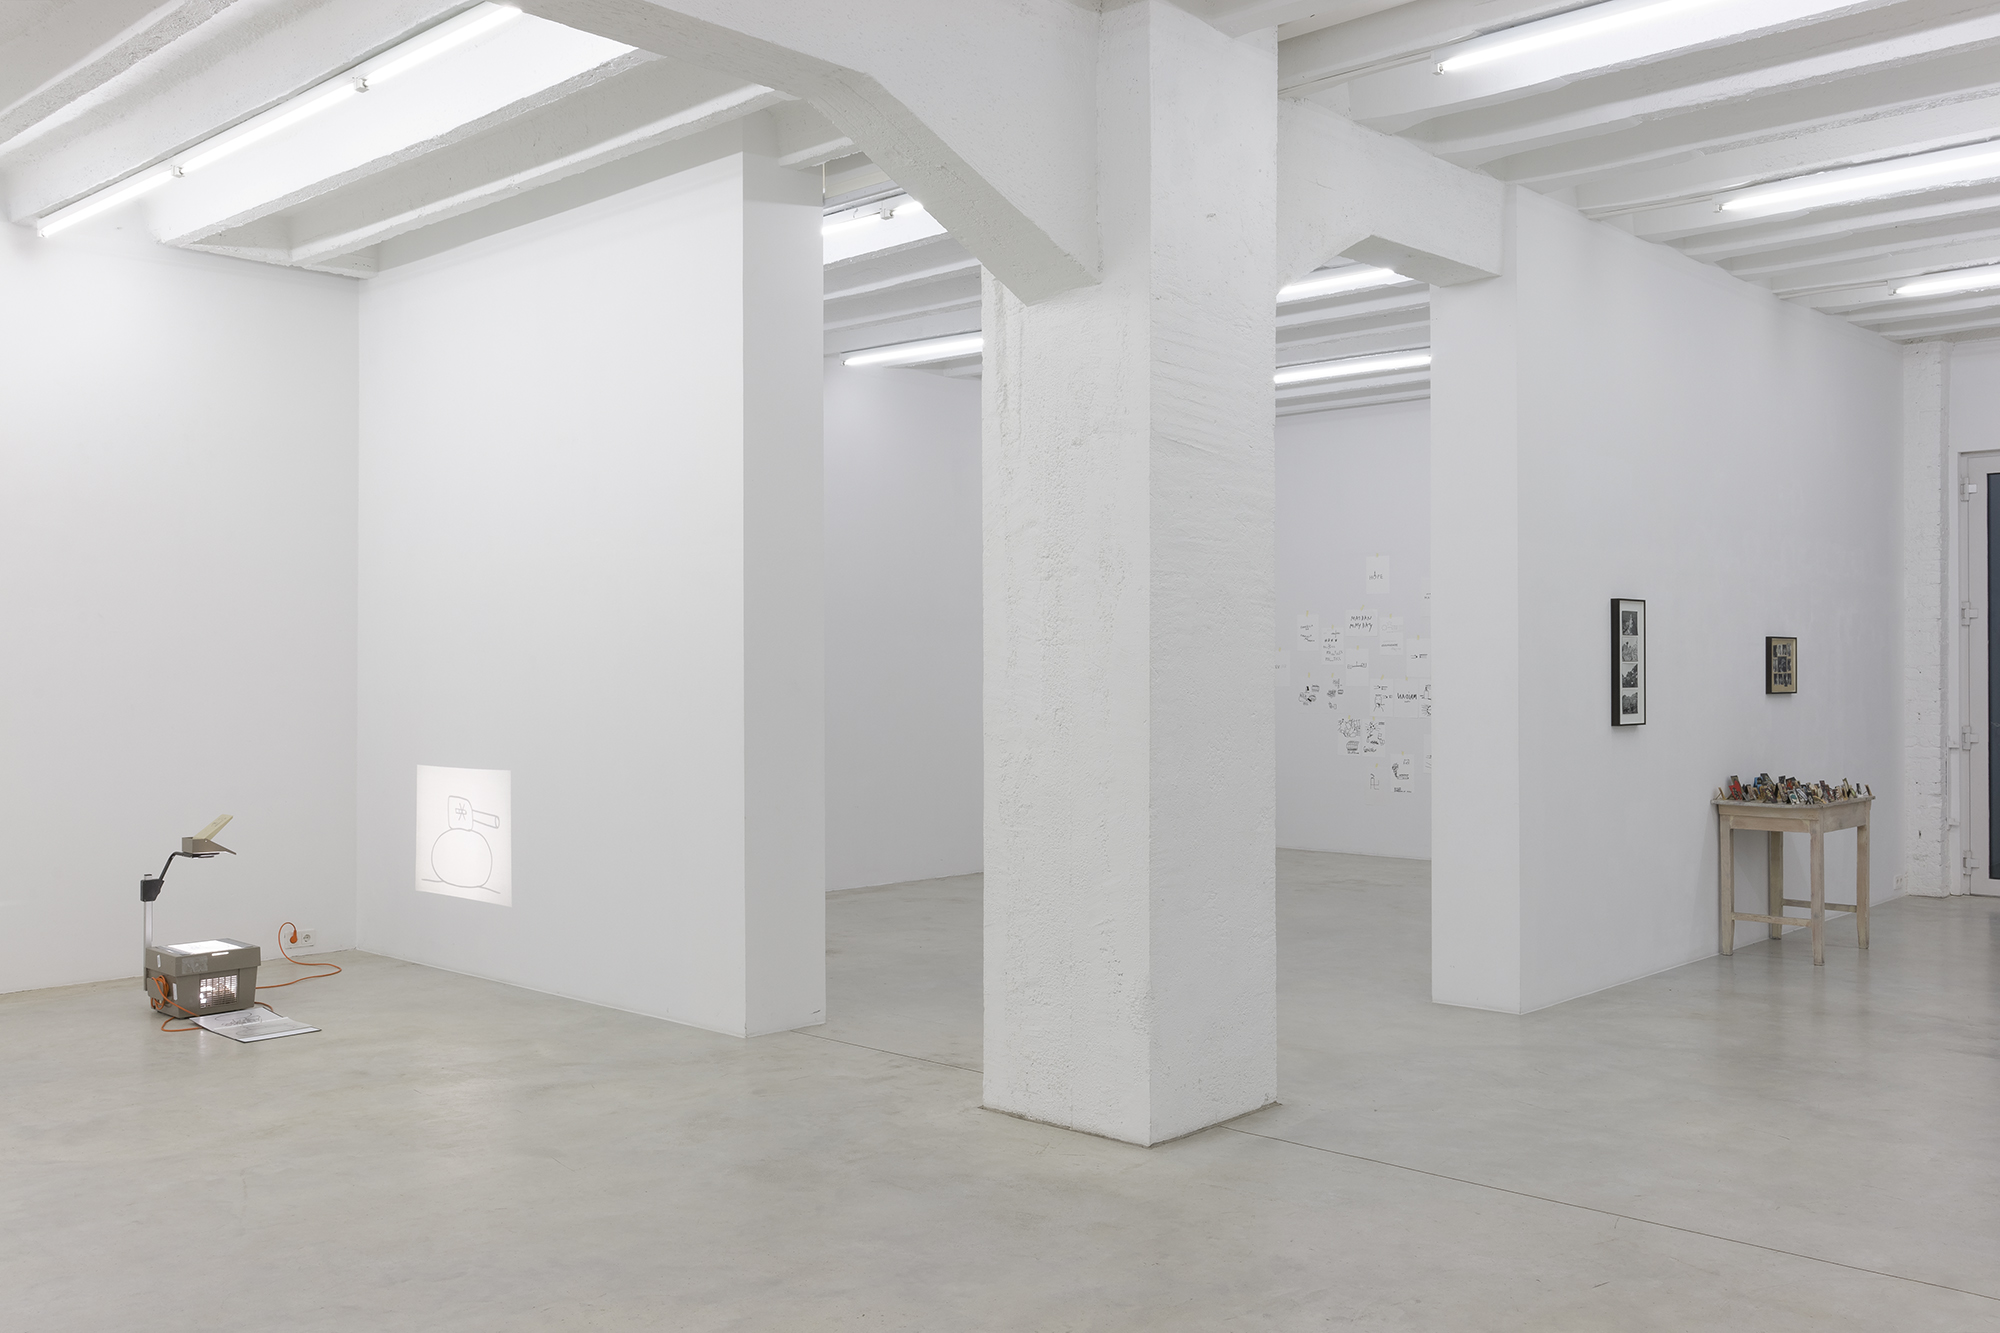 Dan Perjovschi: Need to Draw, exhibition view, Galerija Gregor Podnar, Berlin, 2014. Photo: Marcus Schneider